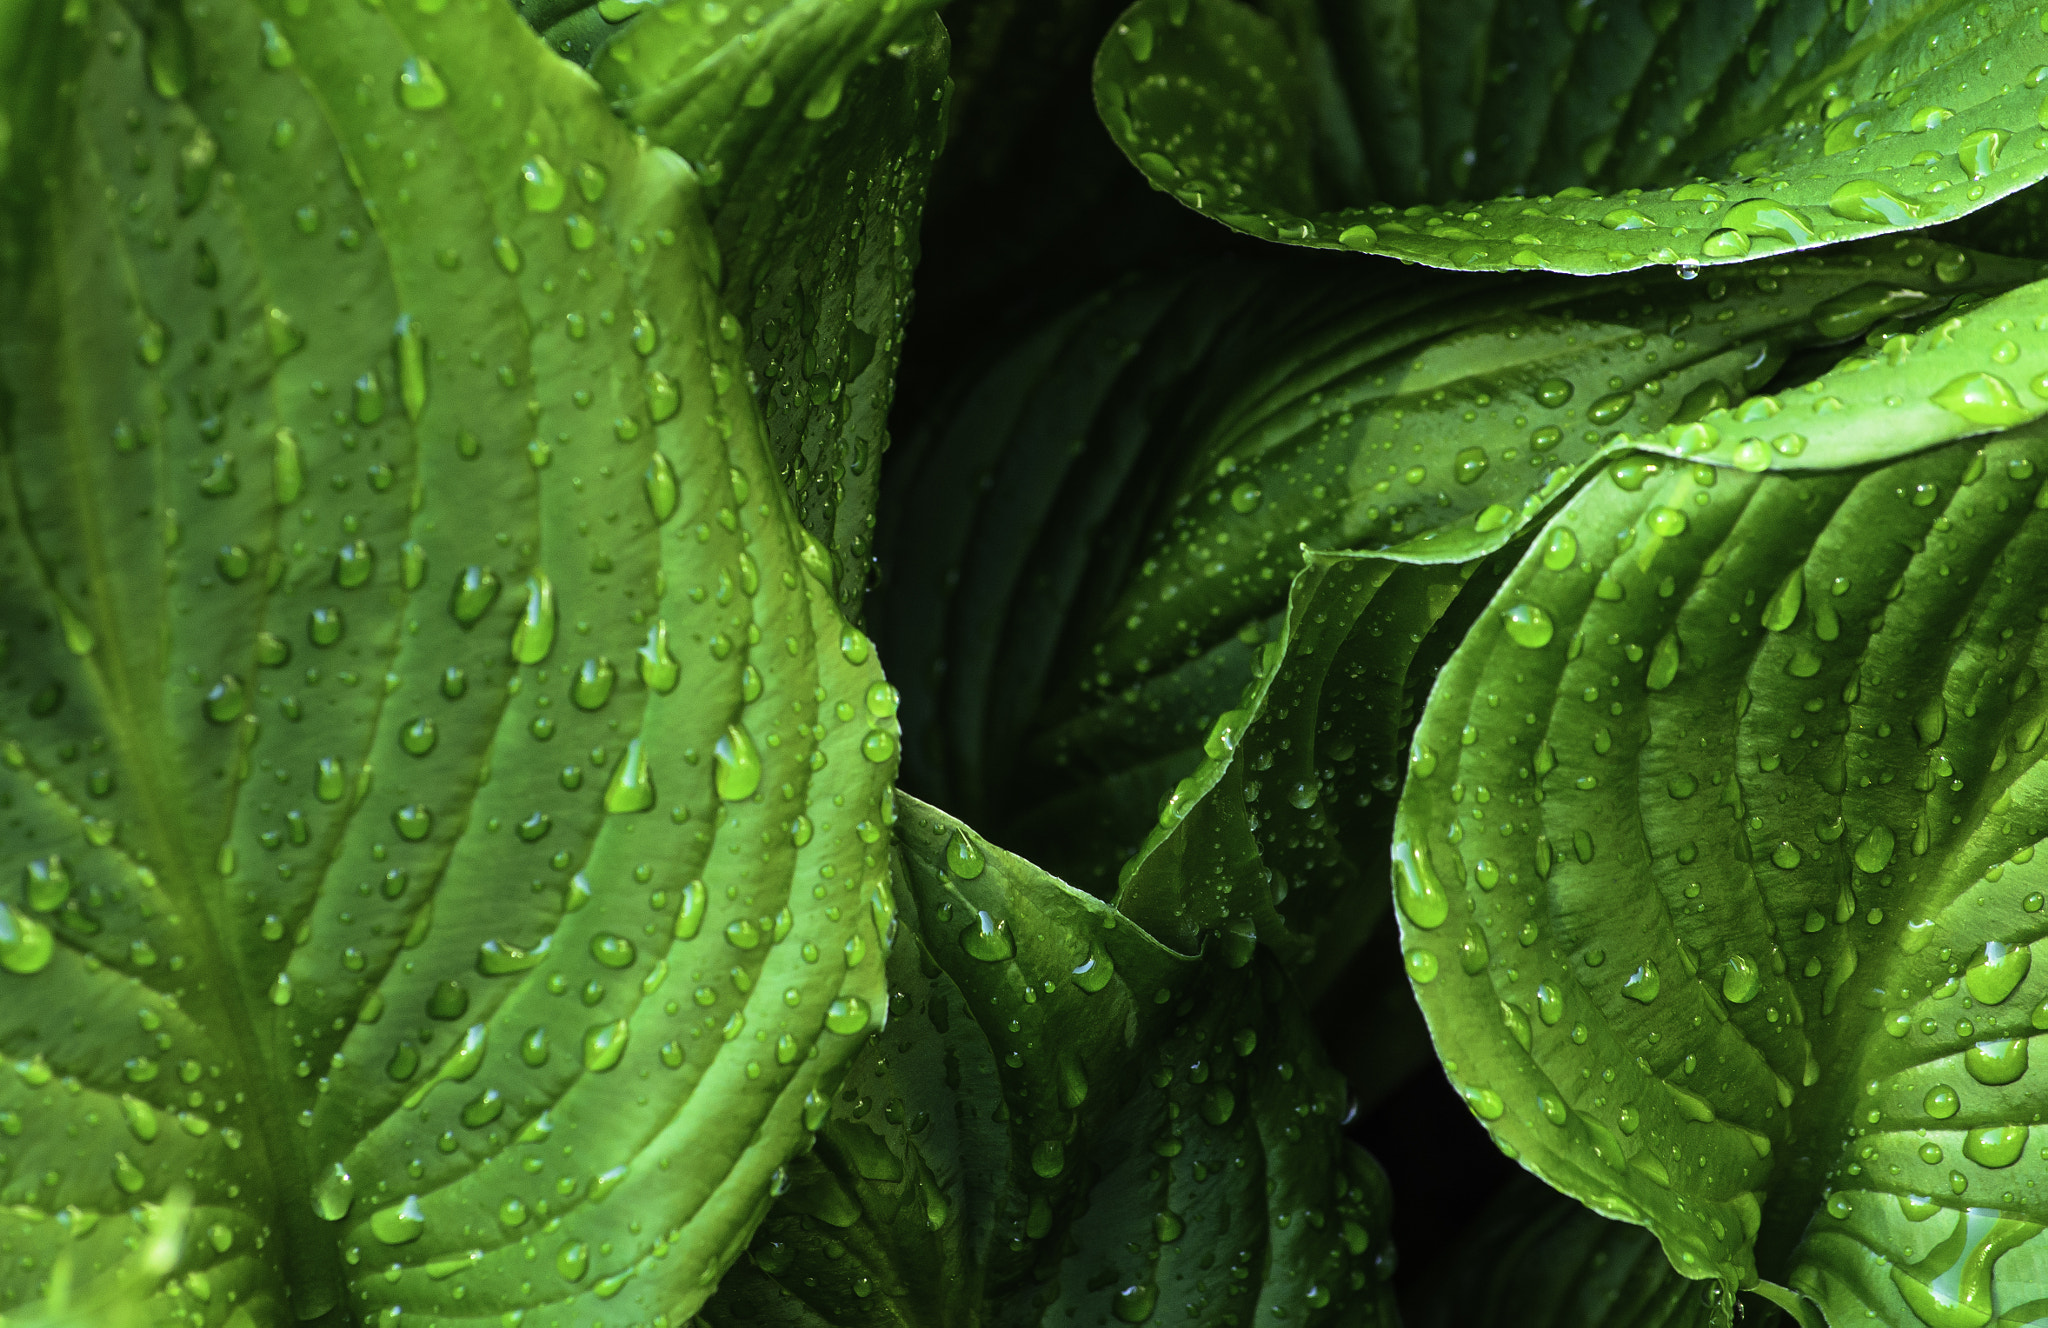 Photograph Hosta Leaves by Jim Molloy on 500px